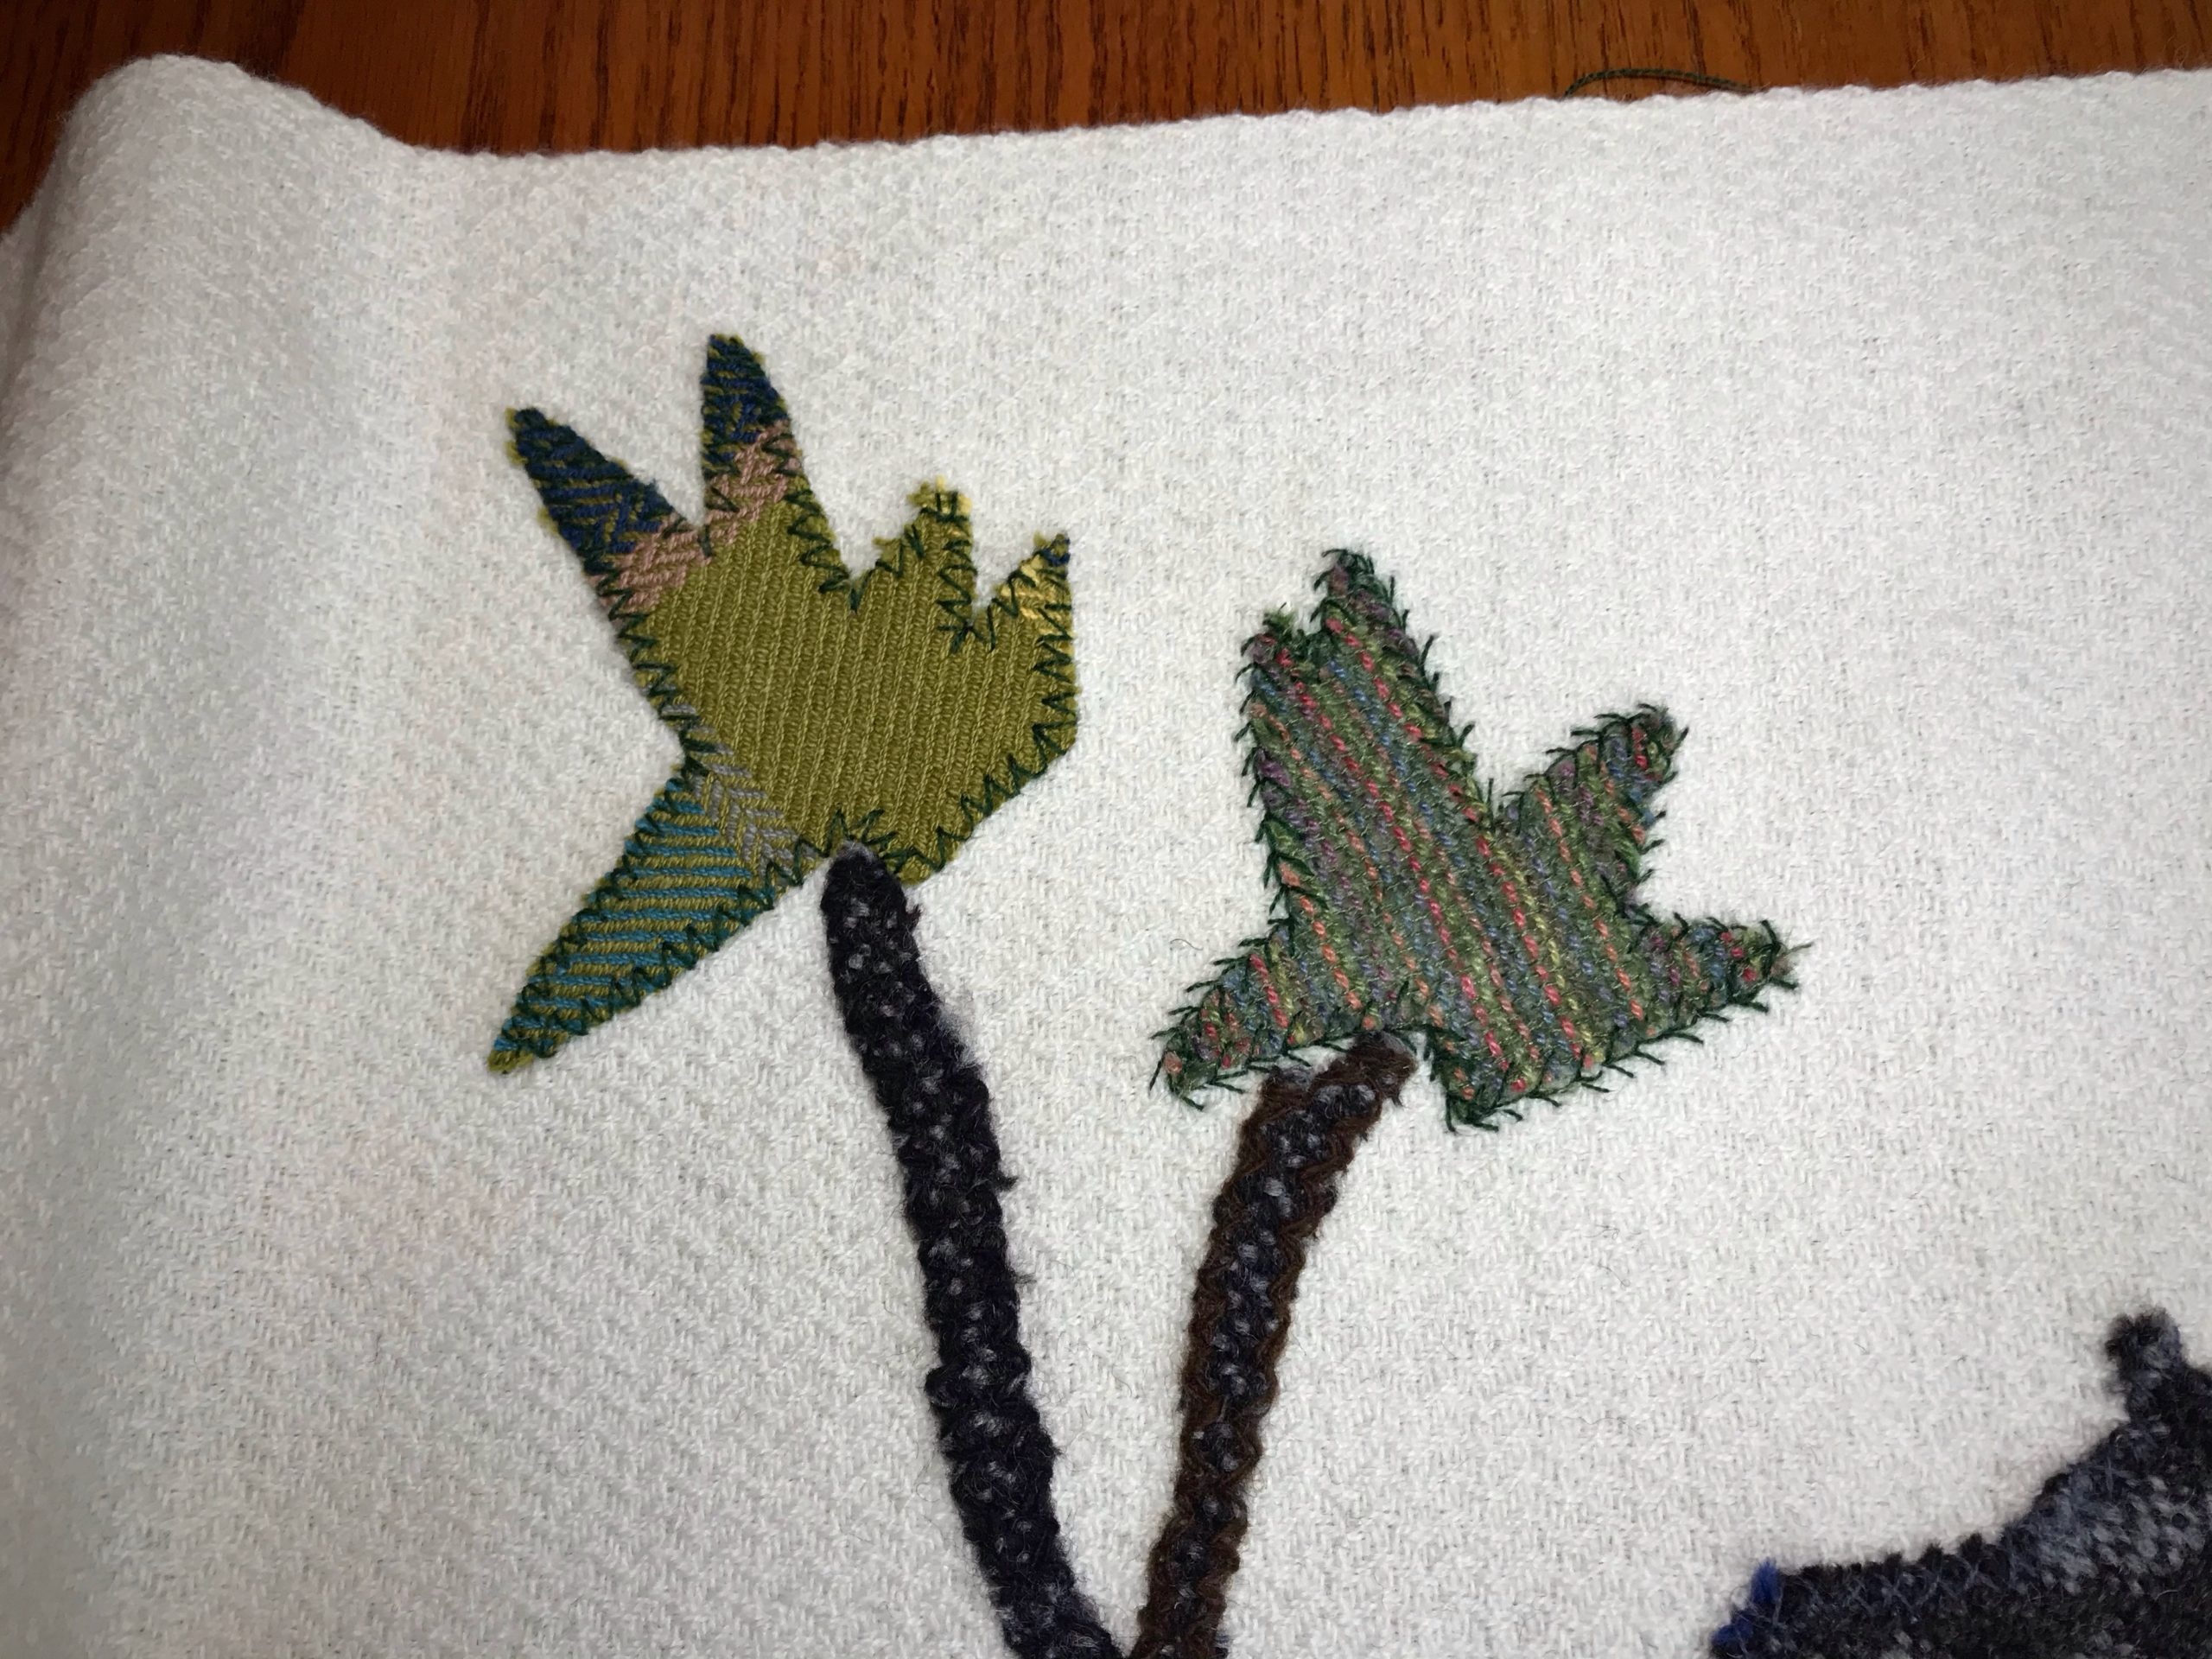 Handwoven applique Nativity project.